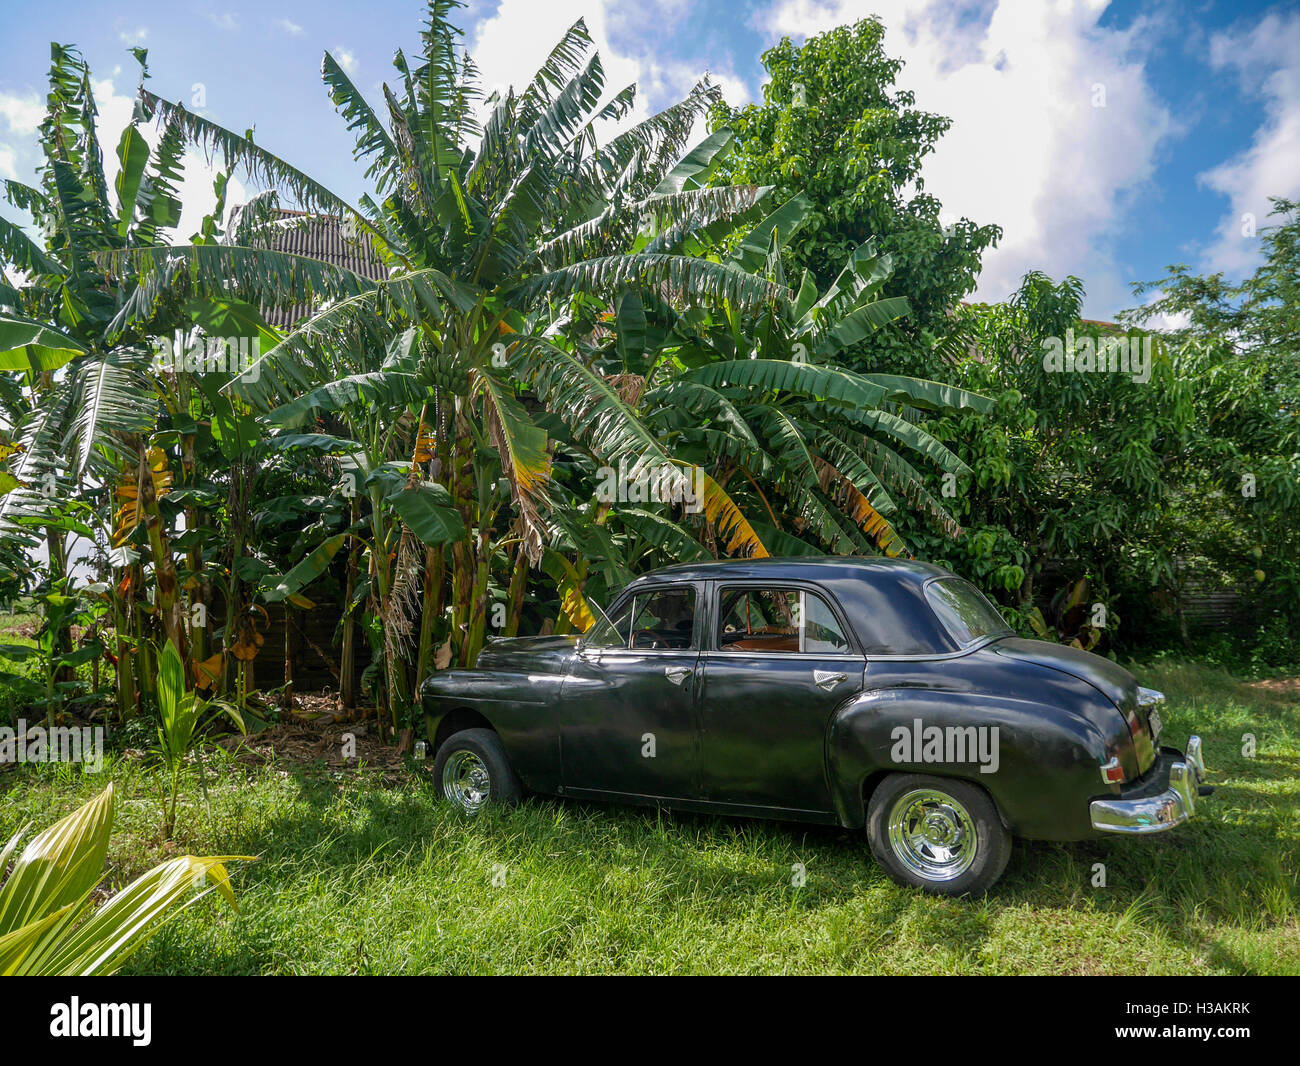 Cuba Air Bnb Black Old American Car From 50s 60s Parked In Banana